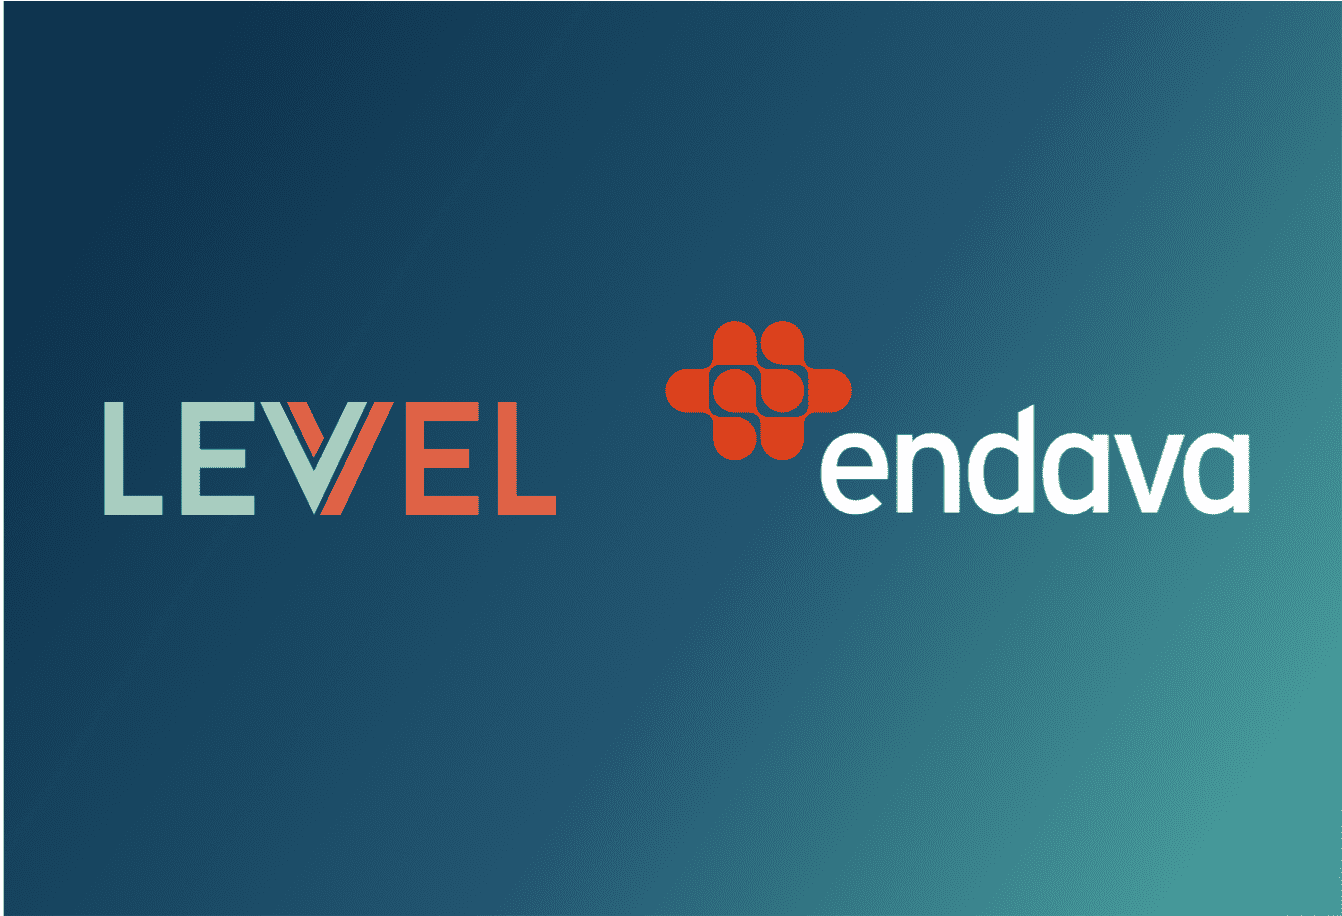 Blue gradient with Levvel and Endava logos